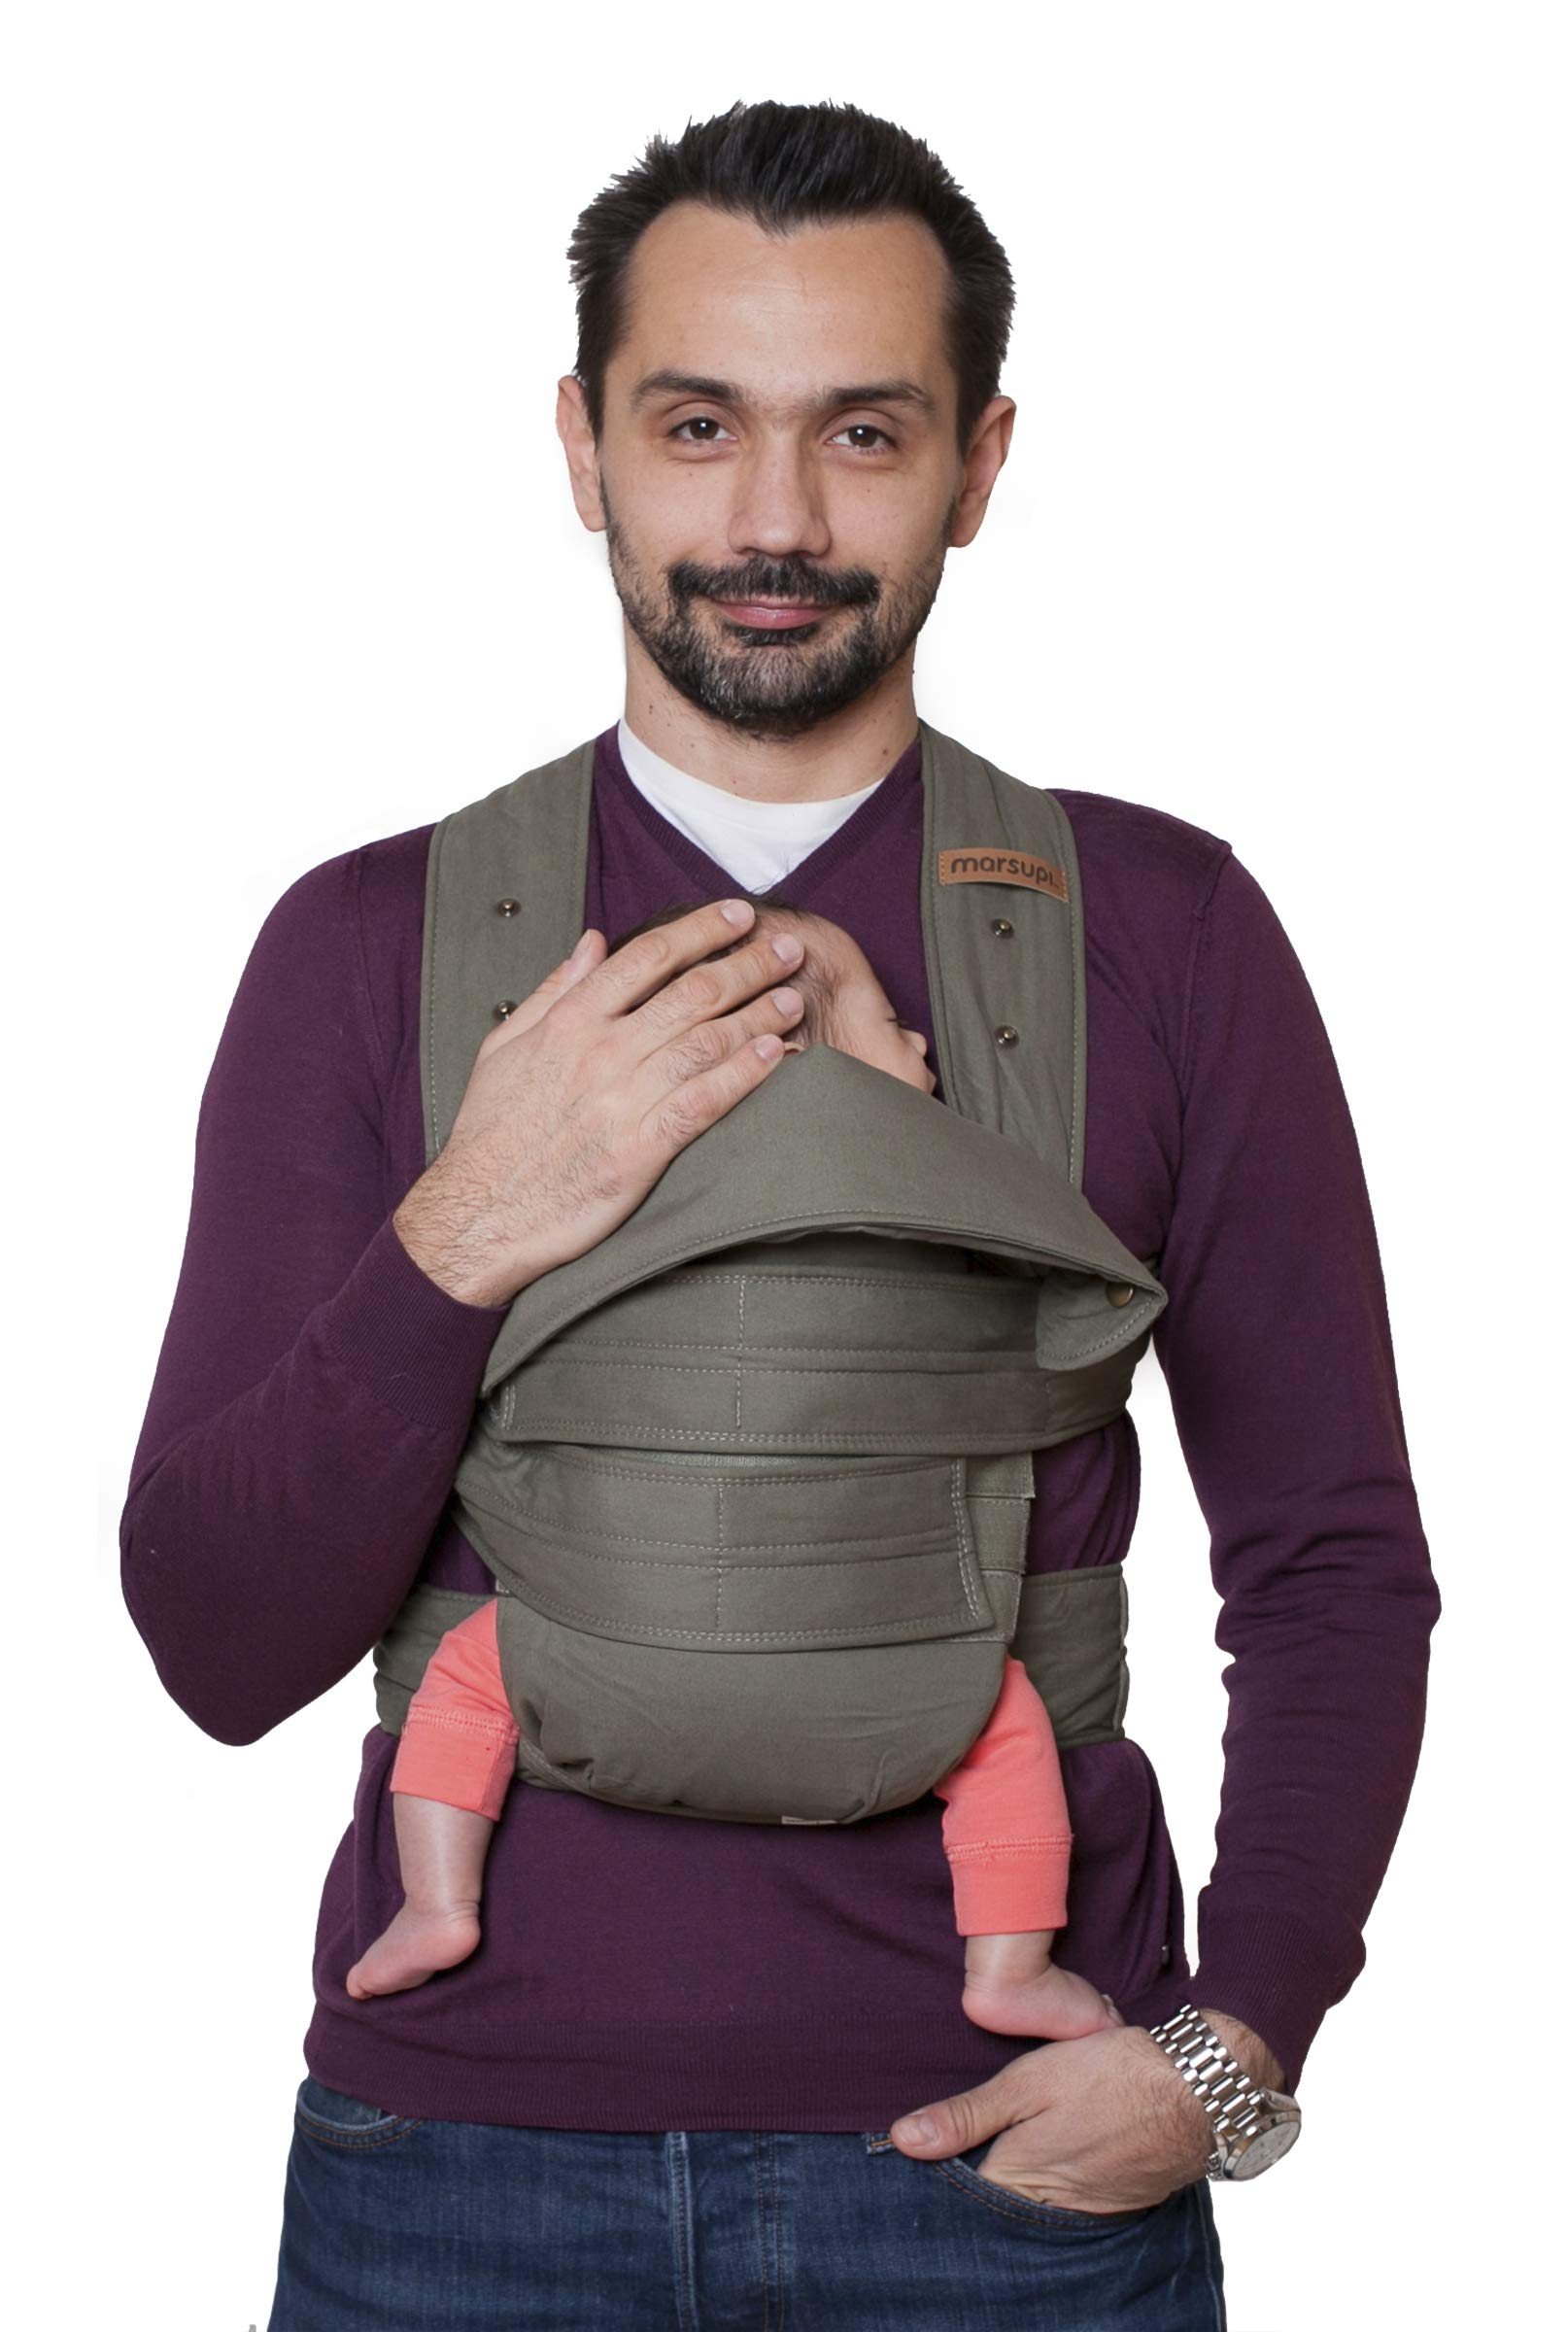 marsupi Baby and Child Carrier, Version 2.0 Classic (Olive/Oliv, XL) Marsupi Particularly compact and lightweight front & hip carrier (weight approx. 400 g) that fits in any pocket. Revised Version 2.0 Easy to put on thanks to unique Velcro system. 100% organic cotton, made in Europe. Machine washable up to 30°. Perfect support for the little ones, optimum weight distribution for the parents, wide base for orthopaedically correct posture (M position) and thigh support for your growing child 1